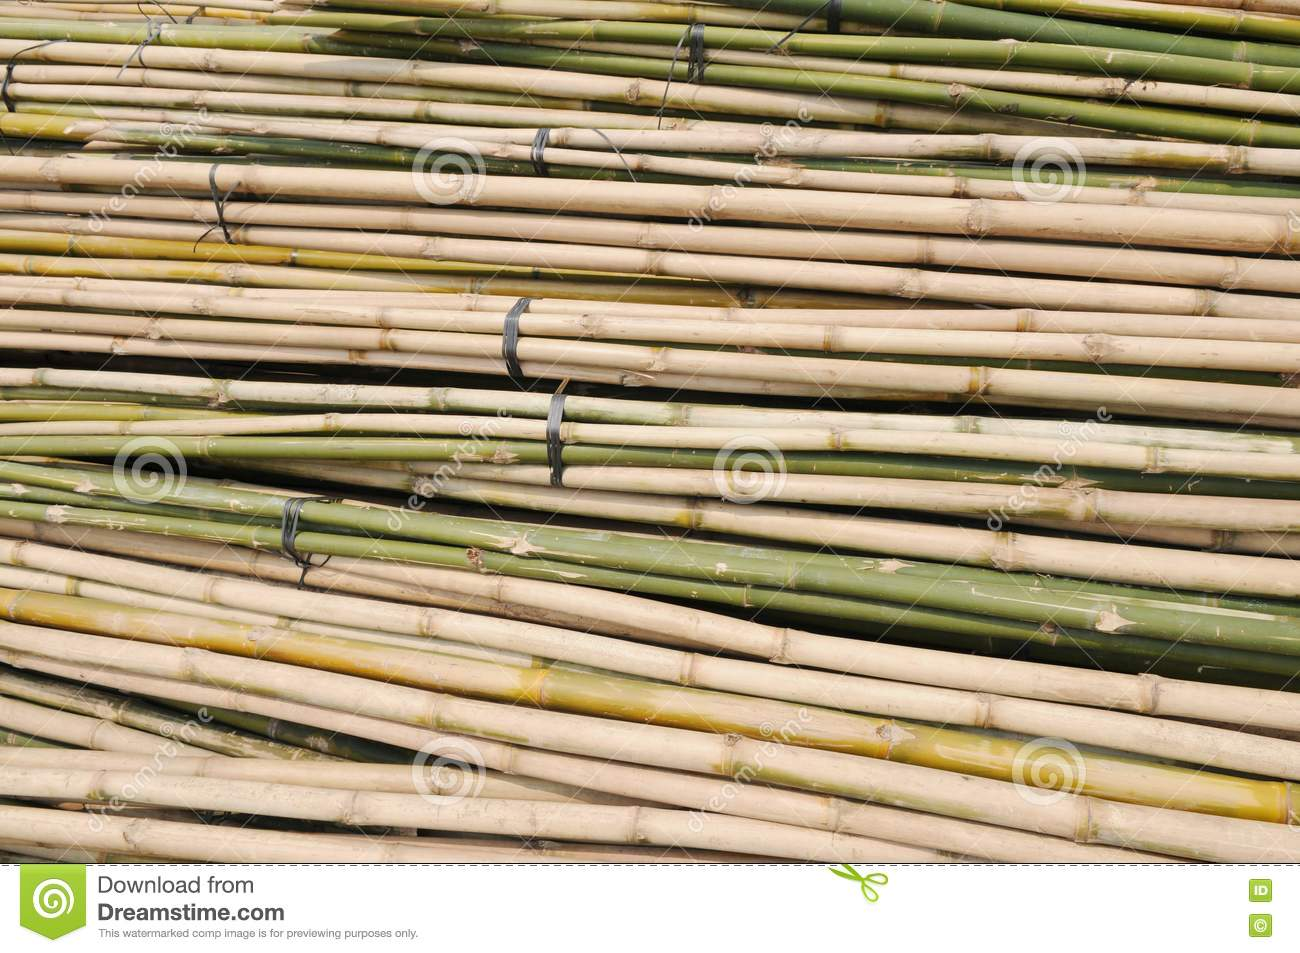 how to grow bamboo from a stalk